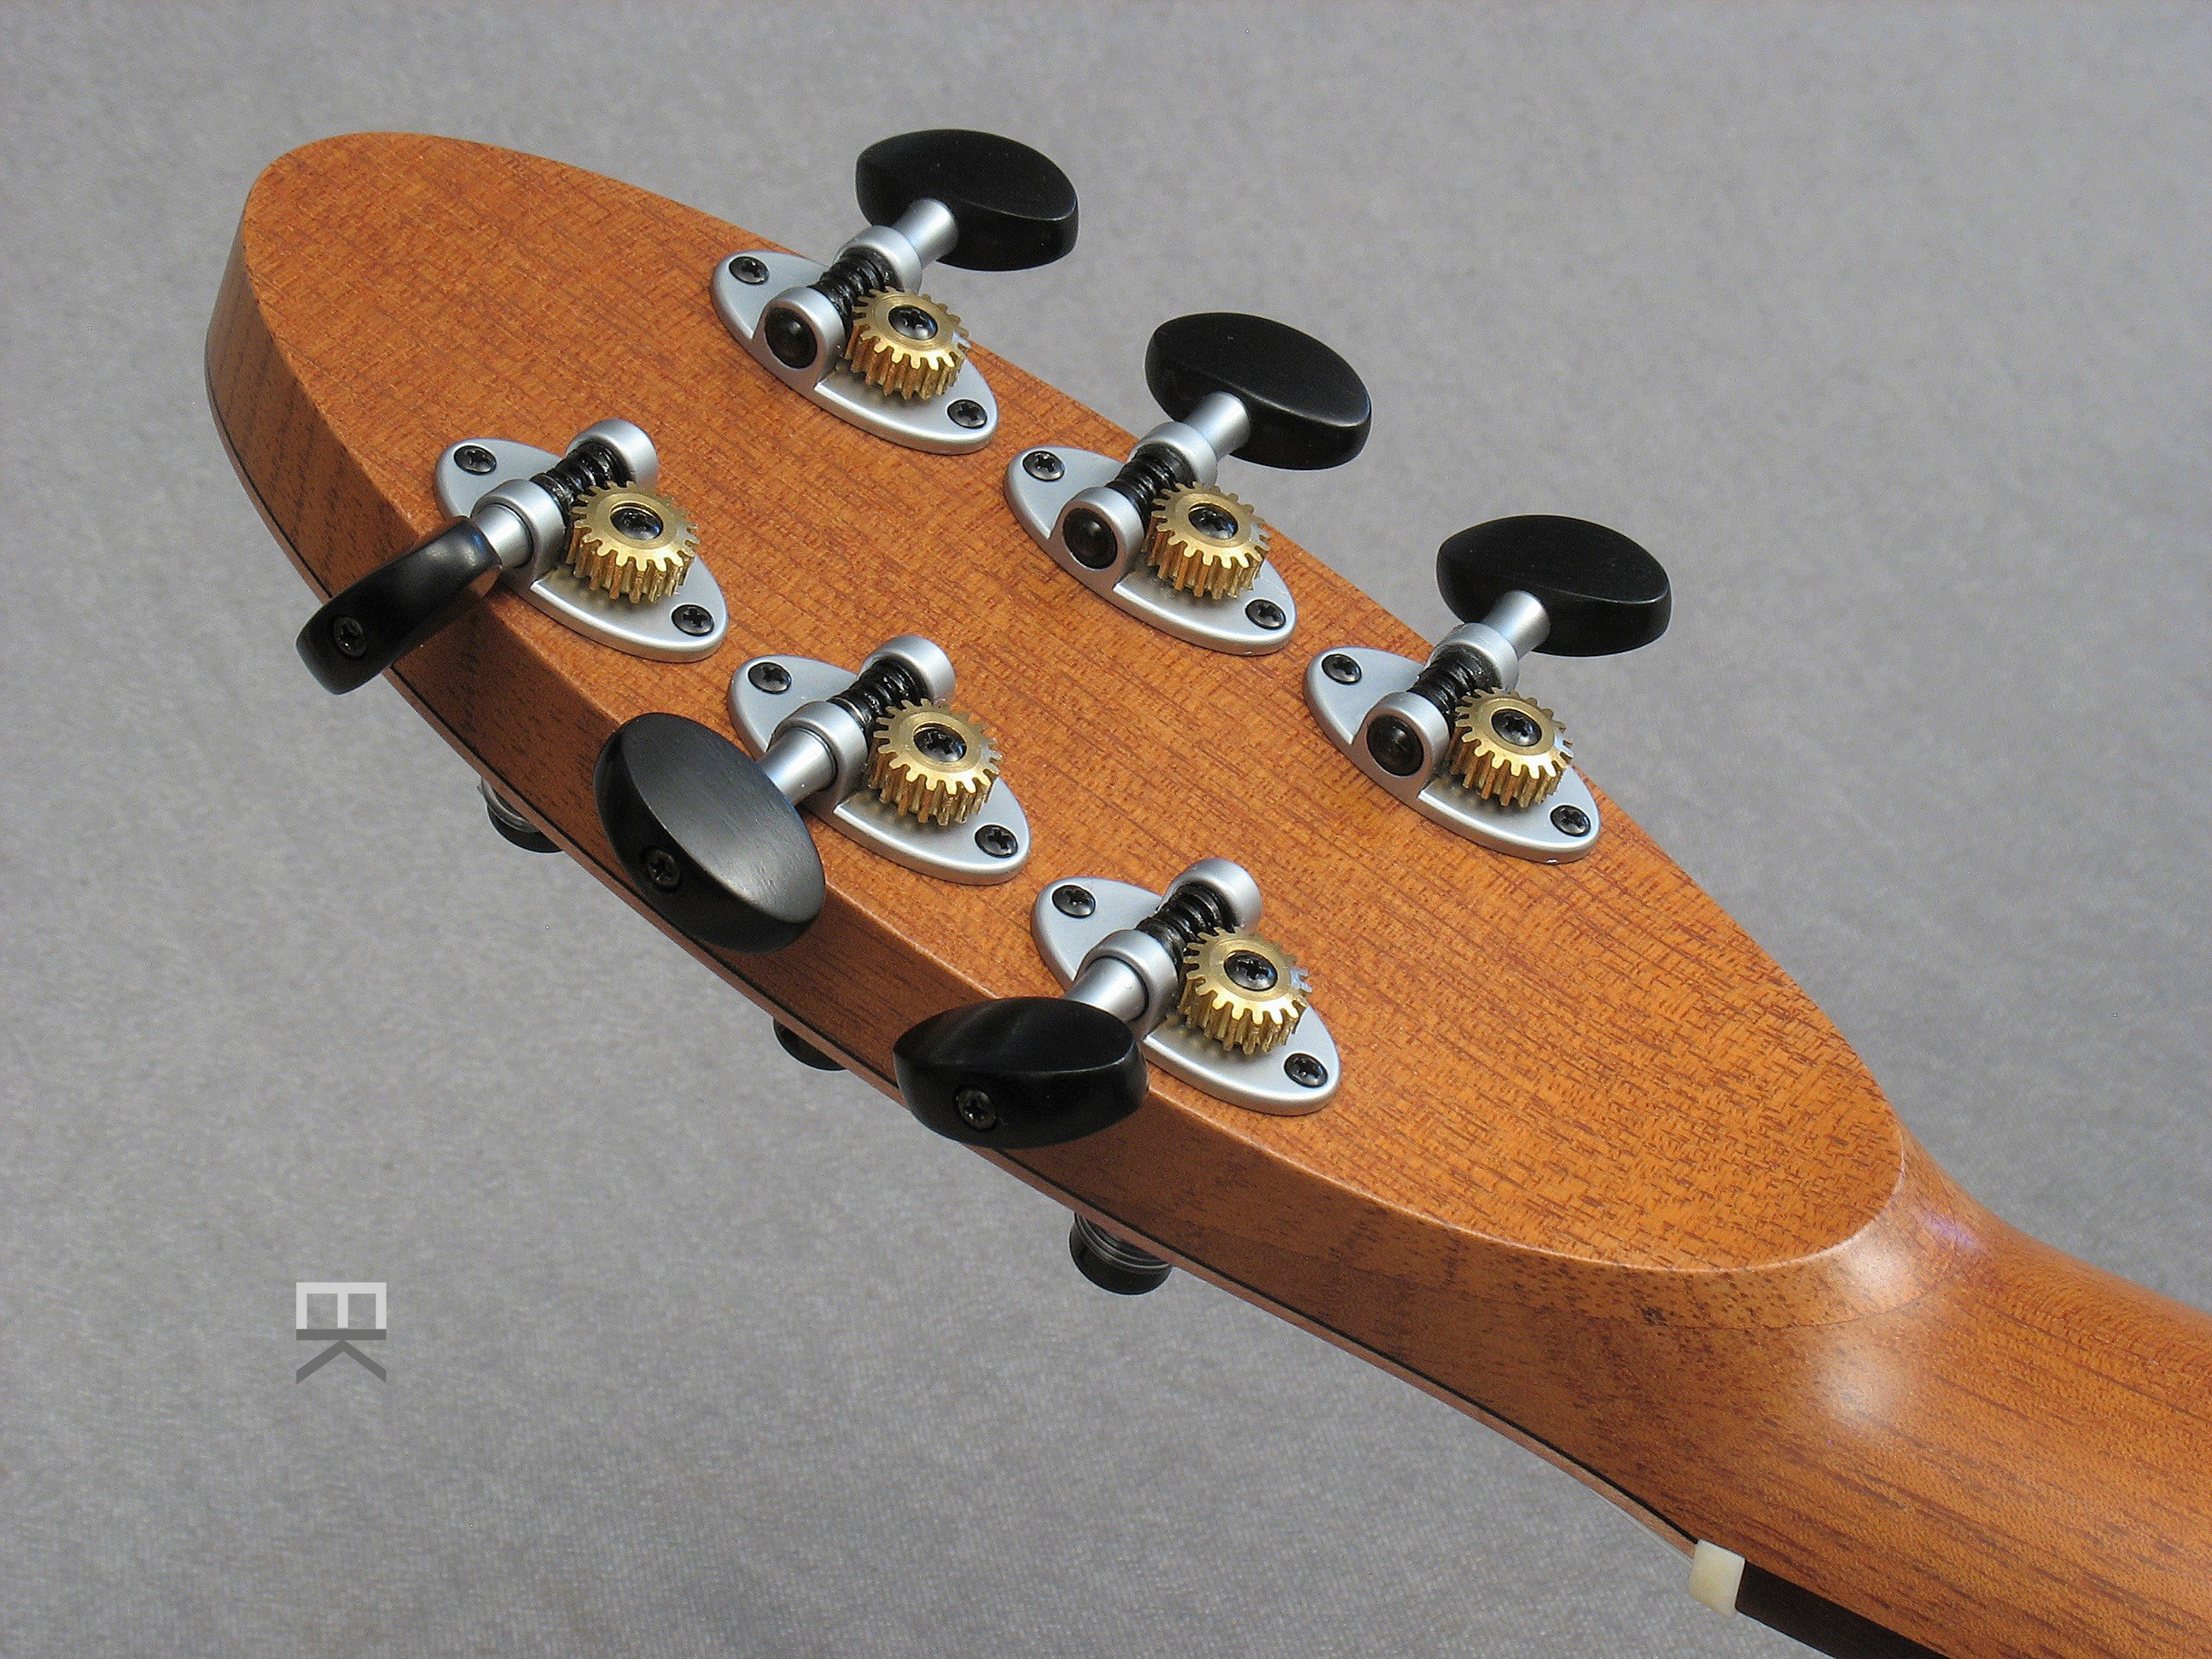 Schertler tuning machines from Switzerland